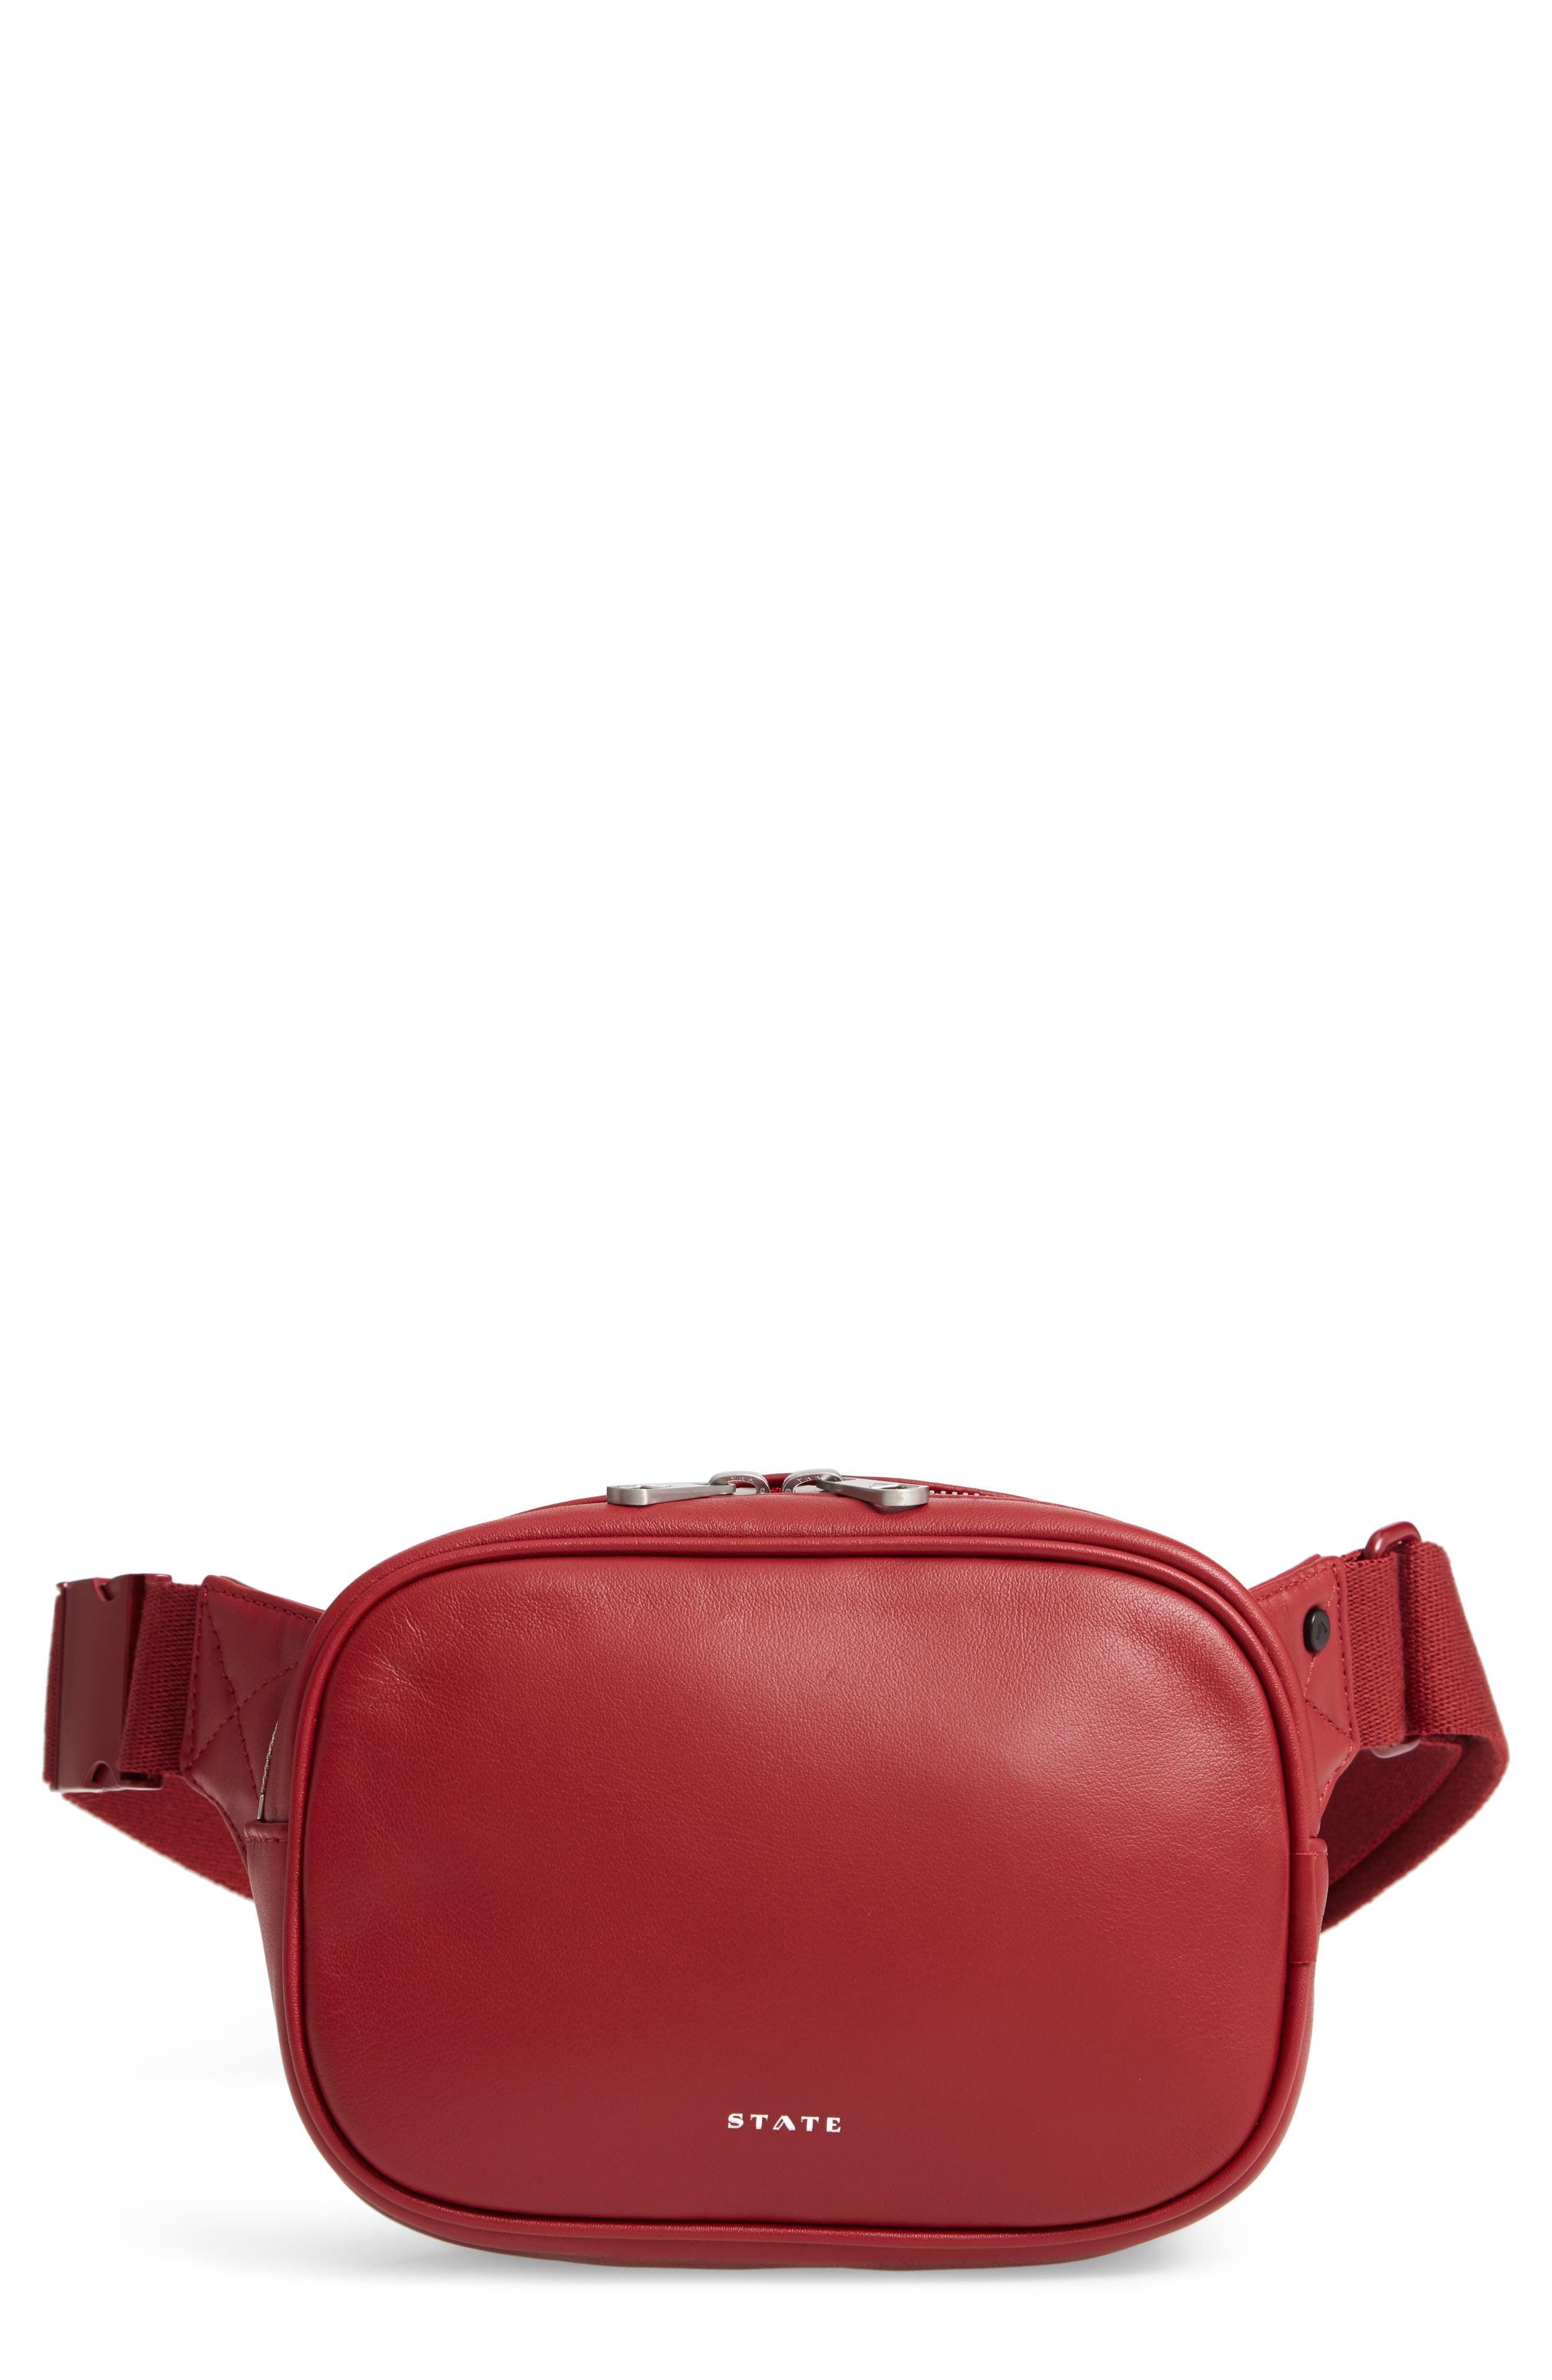 STATE Homecrest Crosby Leather Belt Bag - Red in Red Dahlia